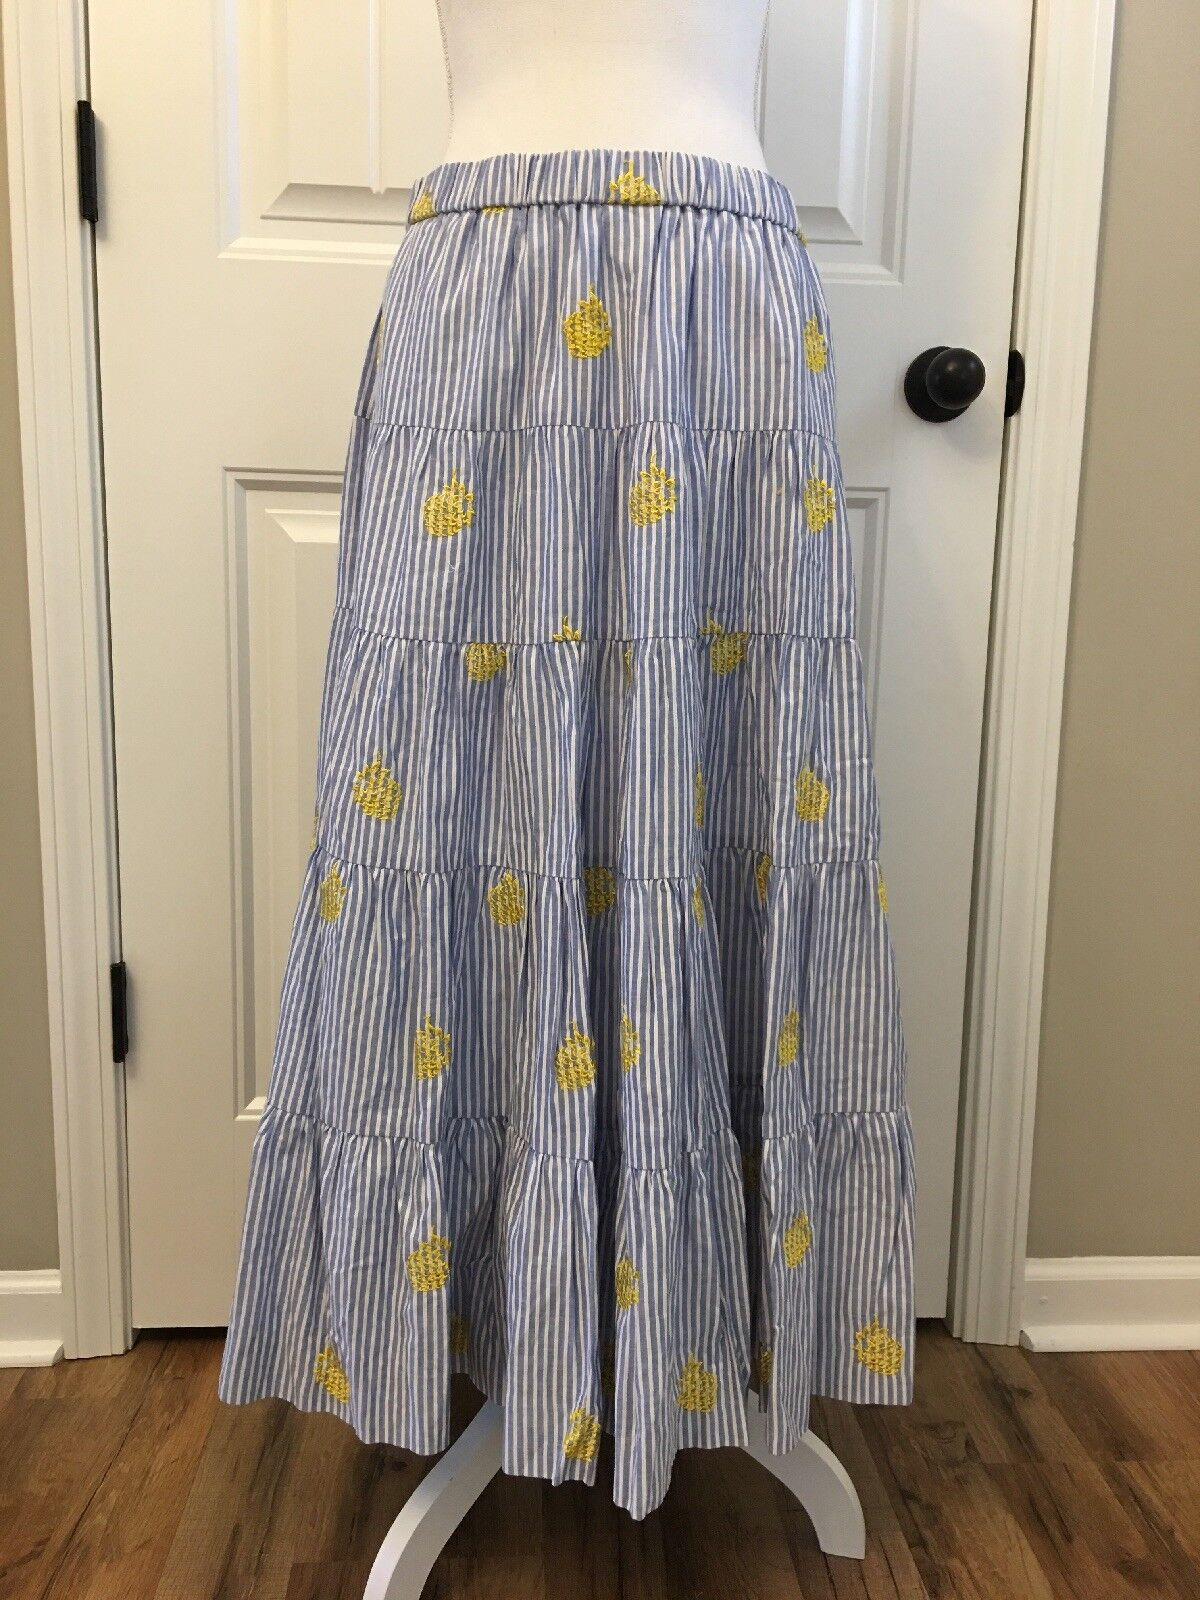 New J Crew Embroidered Pineapple Midi Skirt bluee White Stripes Sz M J1990